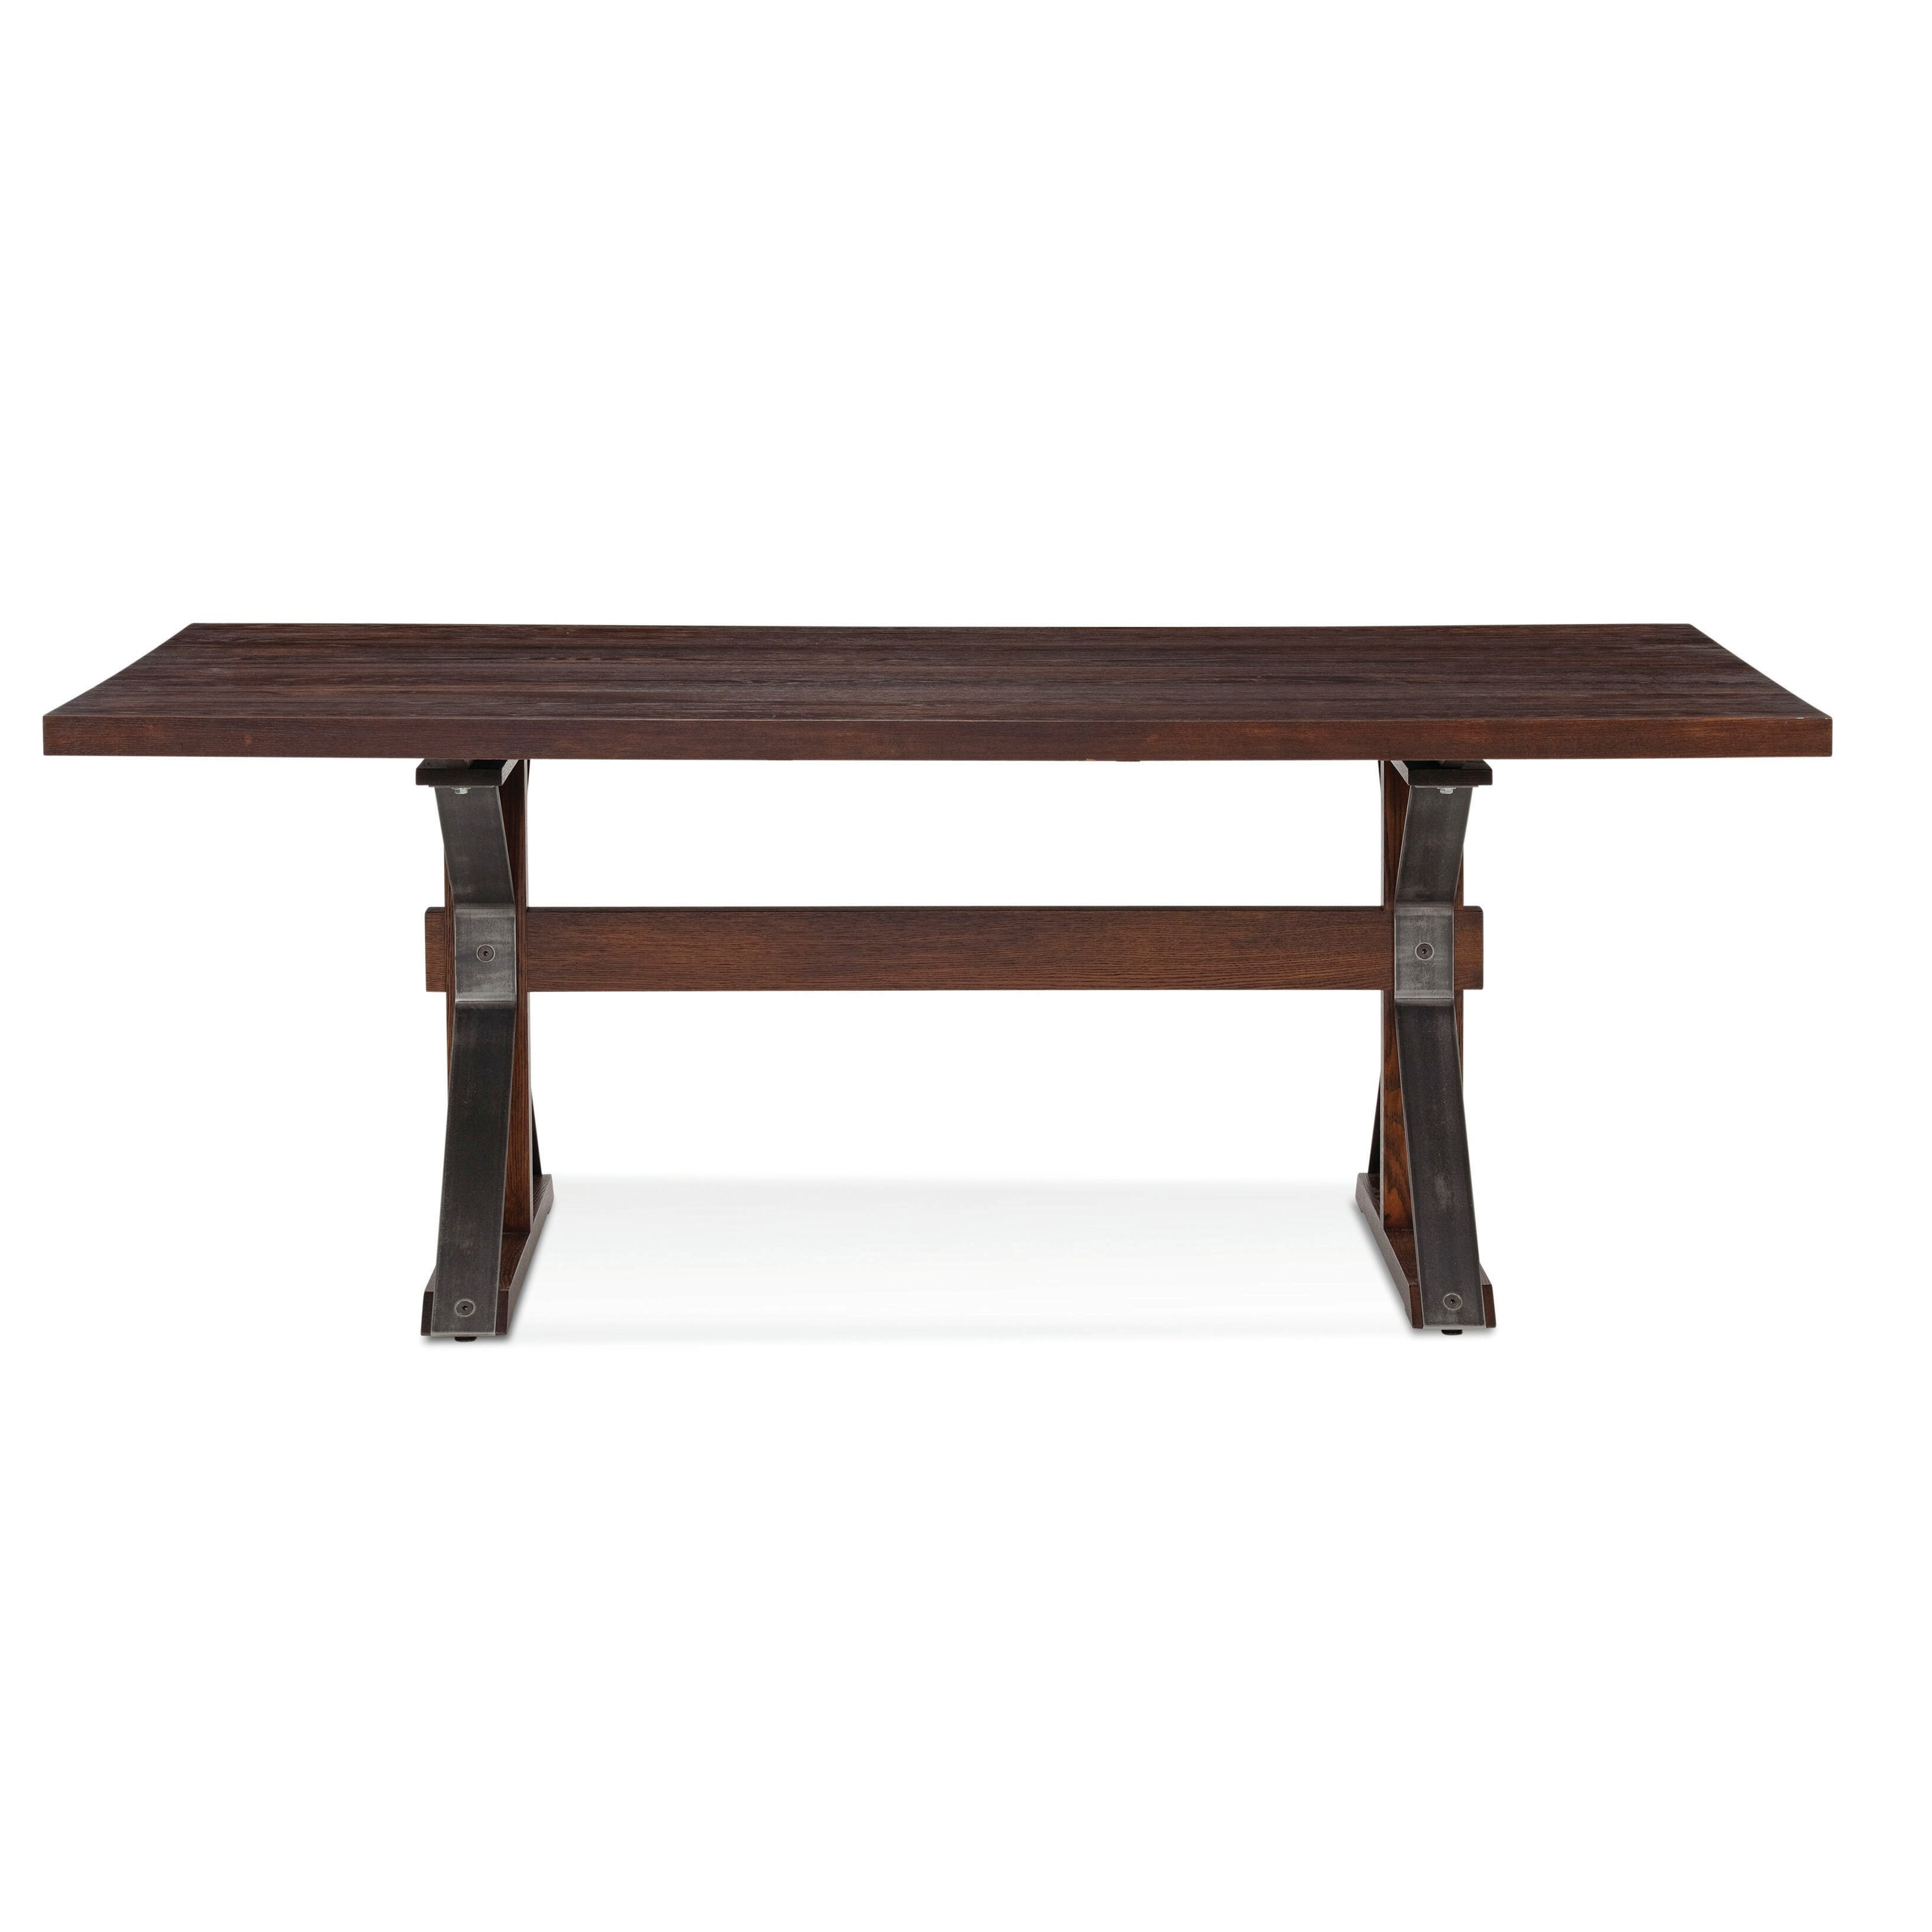 Saloom furniture tremont extendable dining table wayfair for Wayfair furniture dining tables